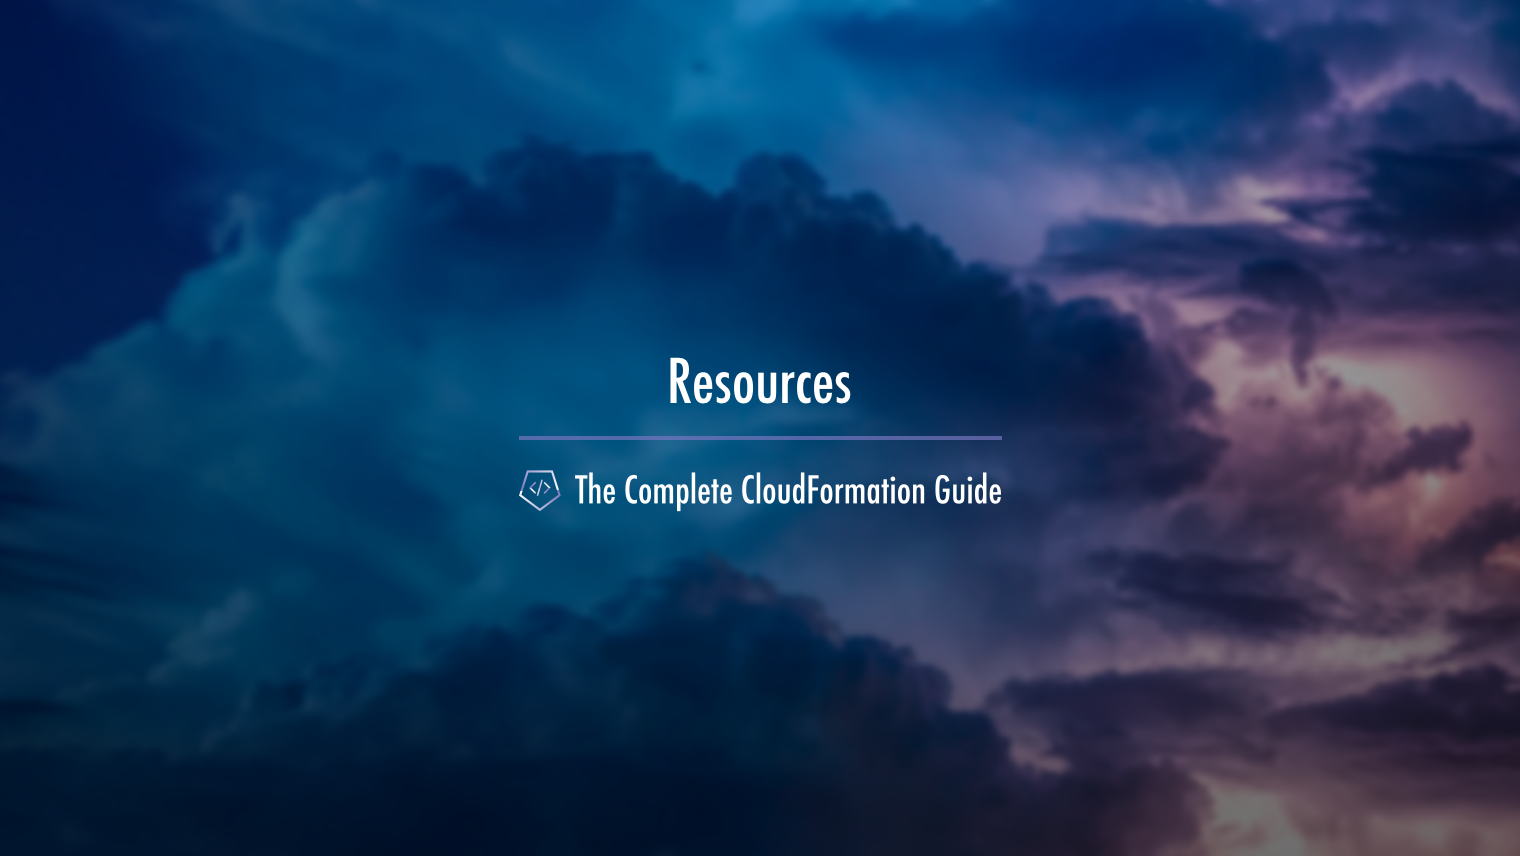 The Complete CloudFormation Guide Resources